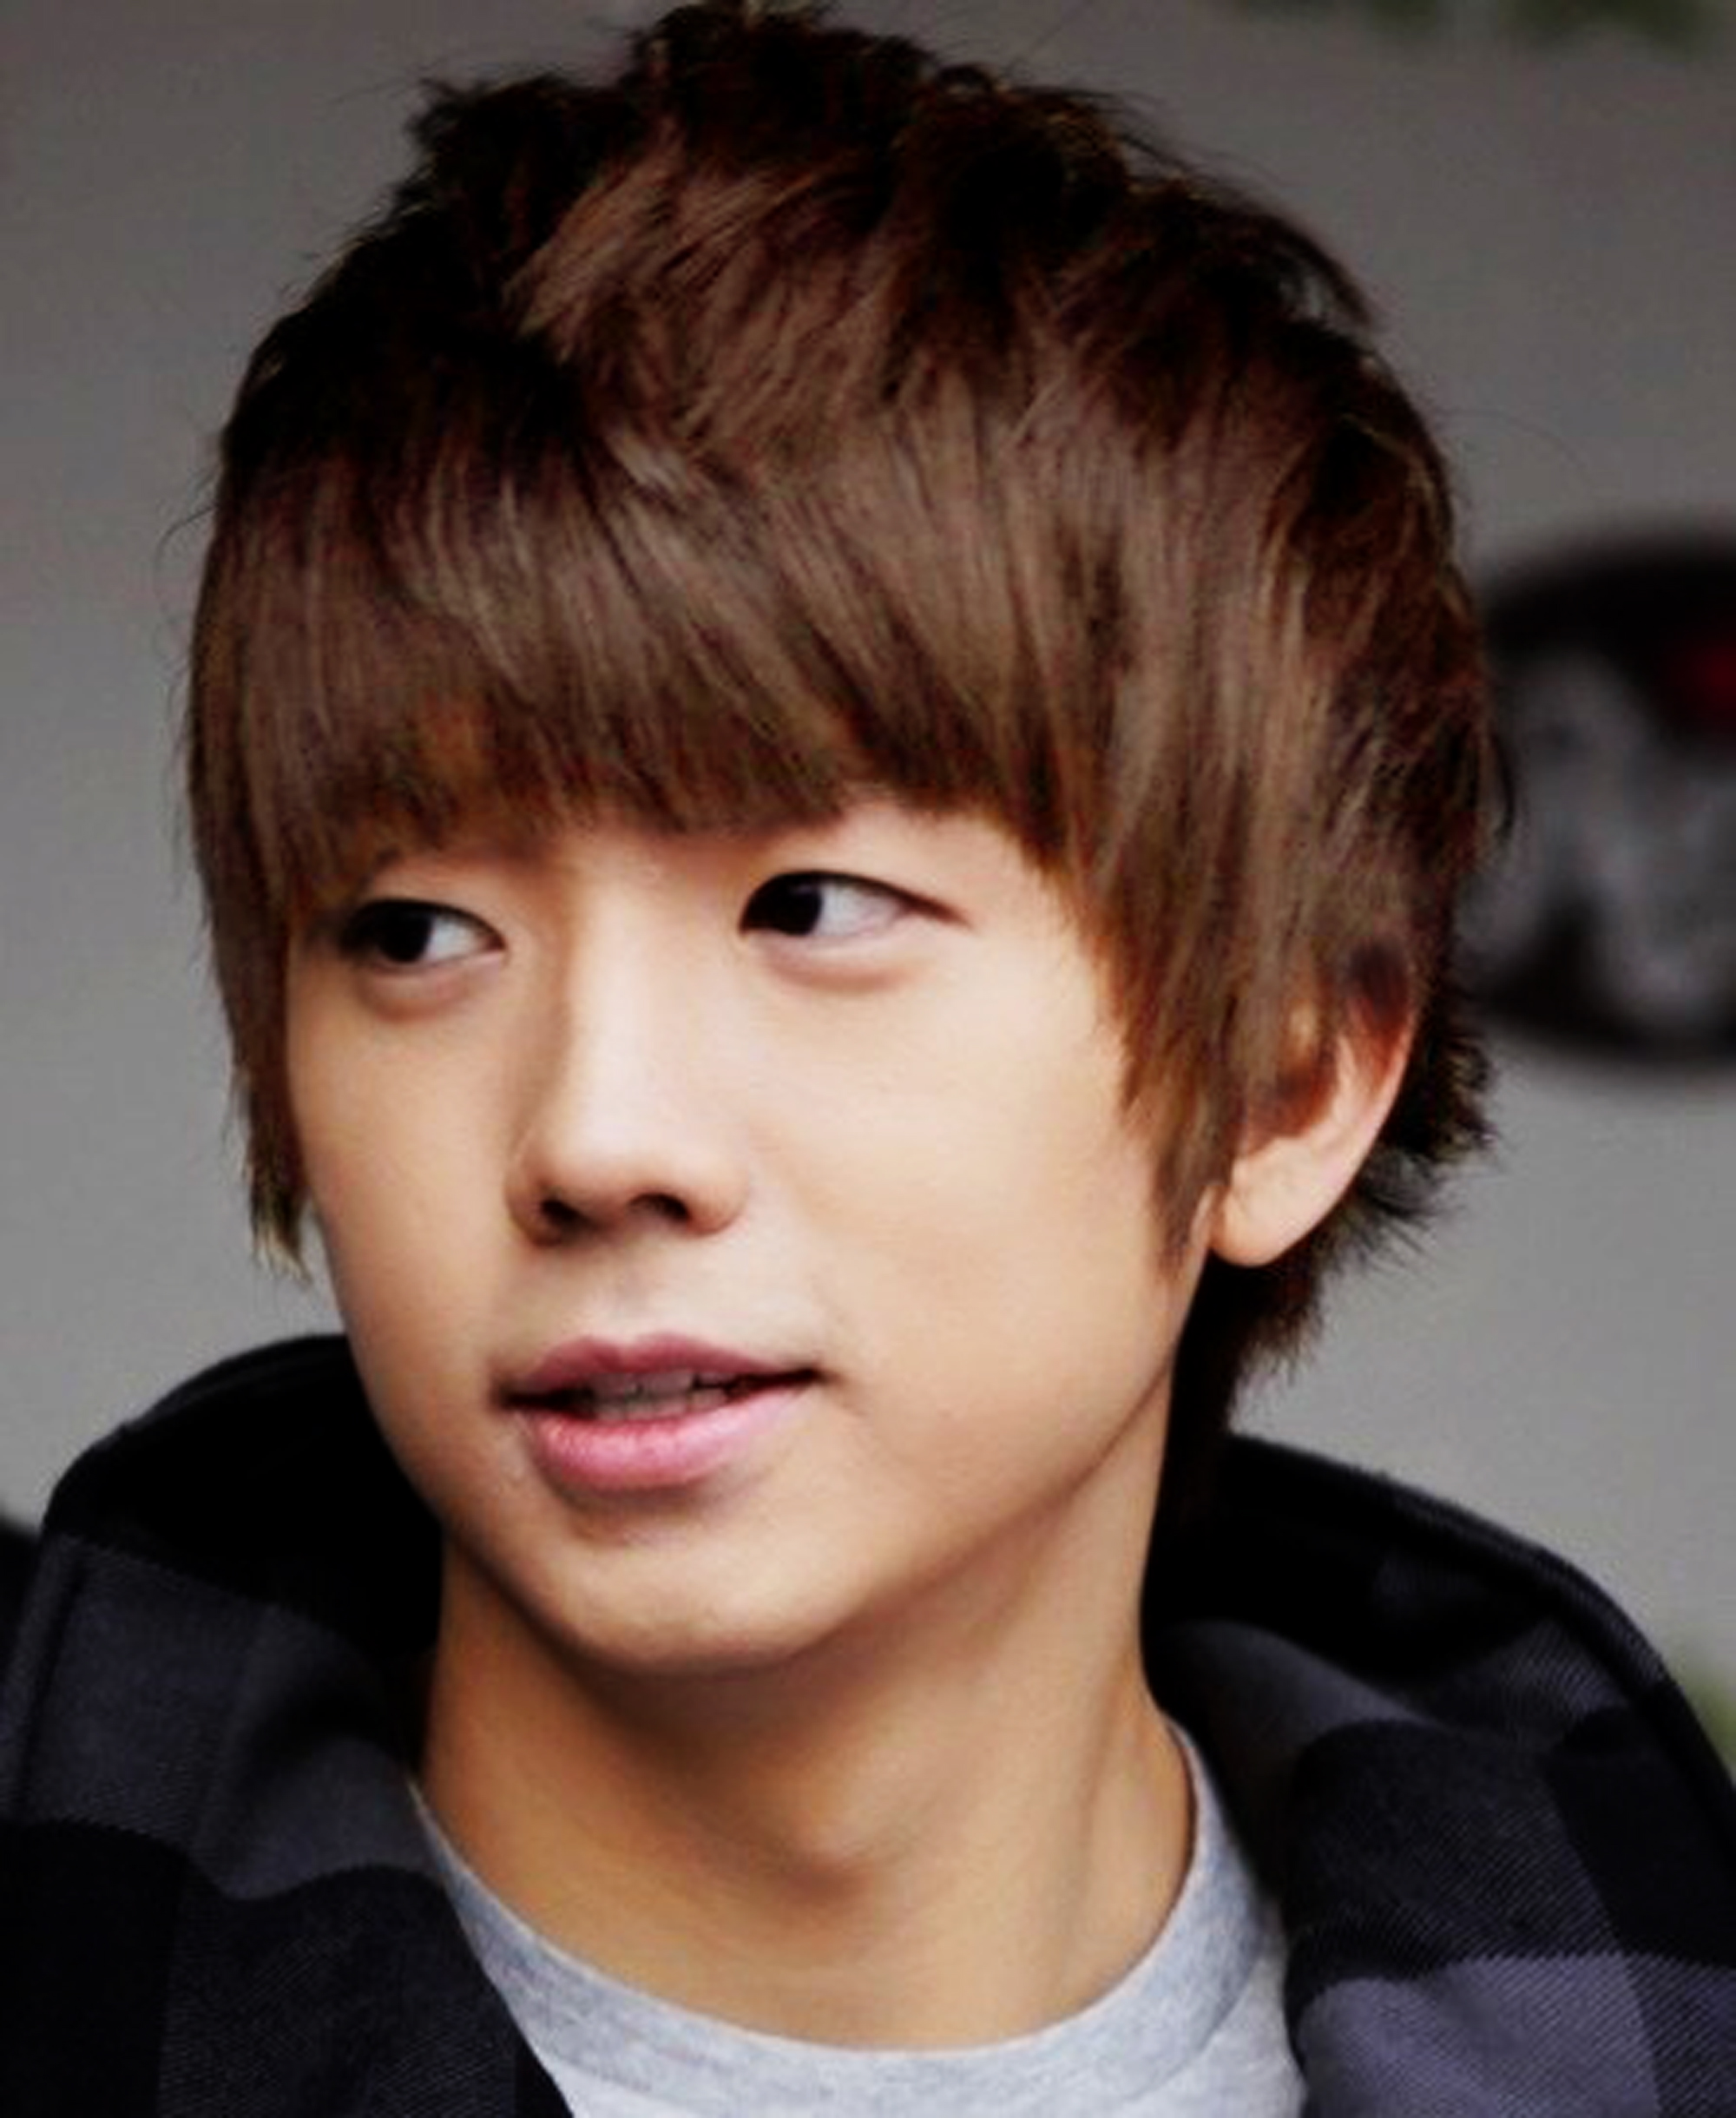 Wooyoung_by_StobbyxSwimmer.jpg